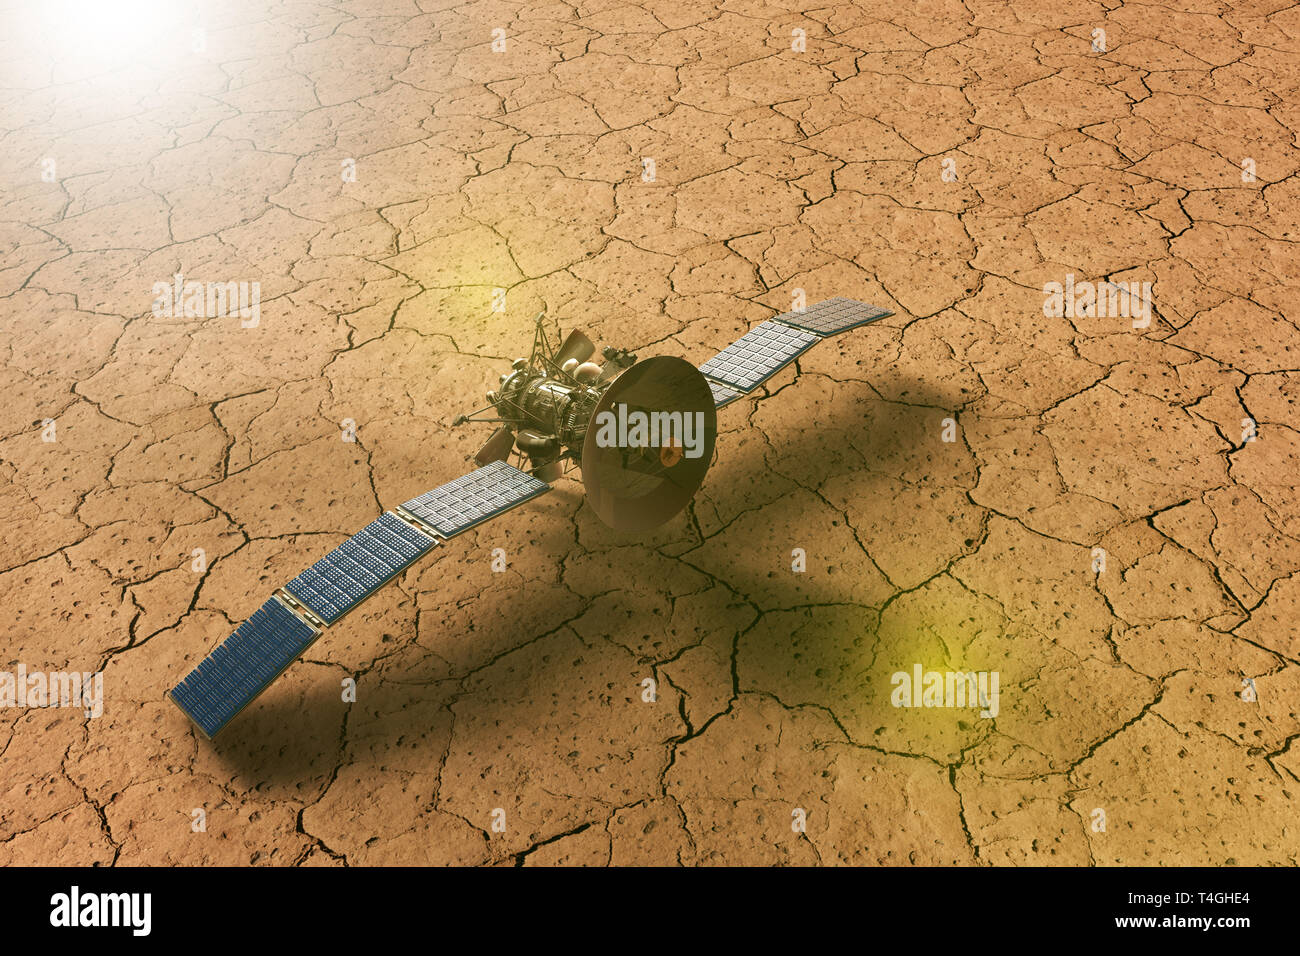 3D rendering of a spacecraft approaching a dry planet - Stock Image